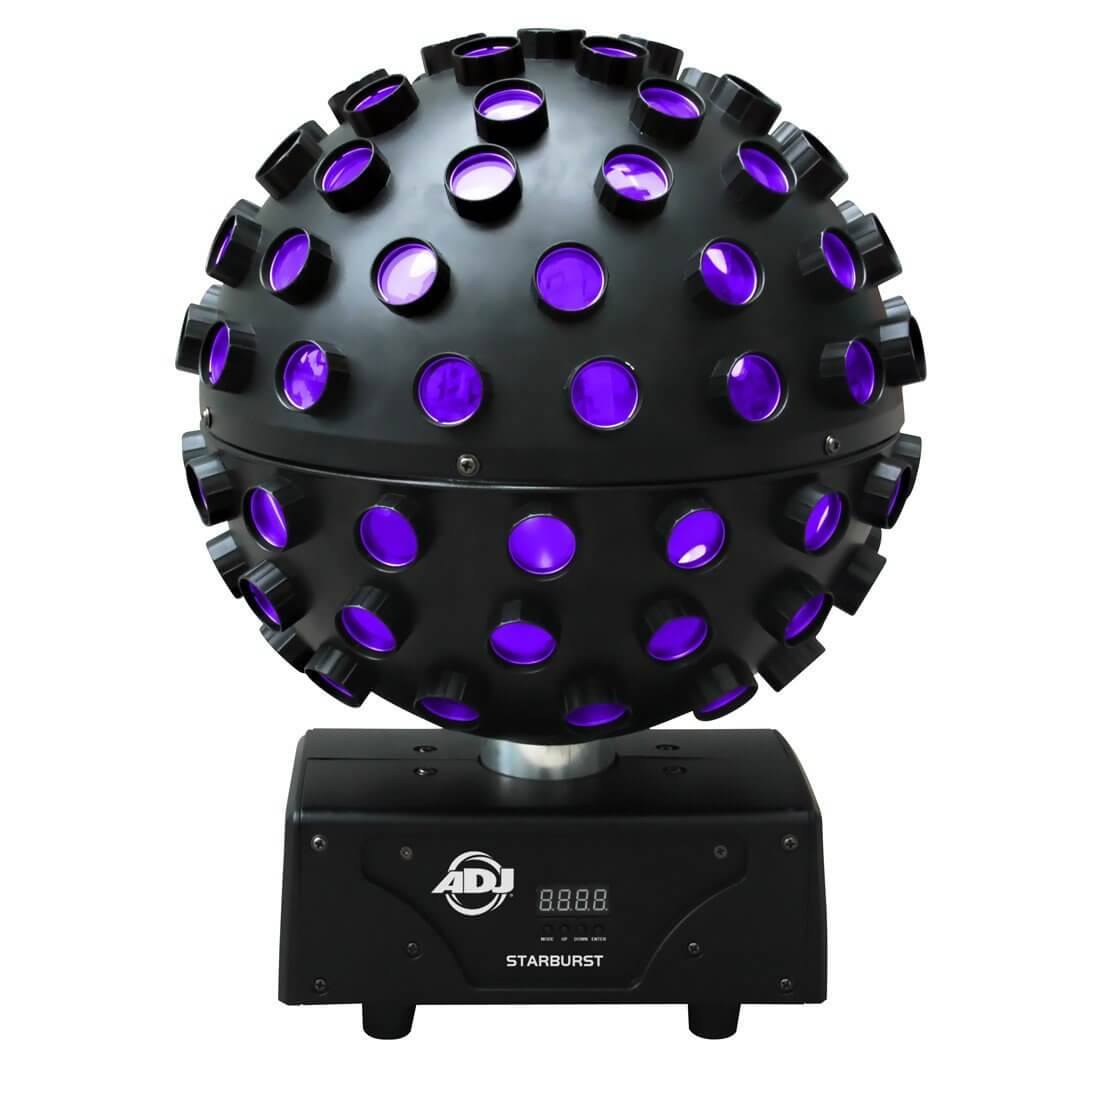 ADJ Starburst 5 x 15W RGBWAP LED Mirror Ball Effect